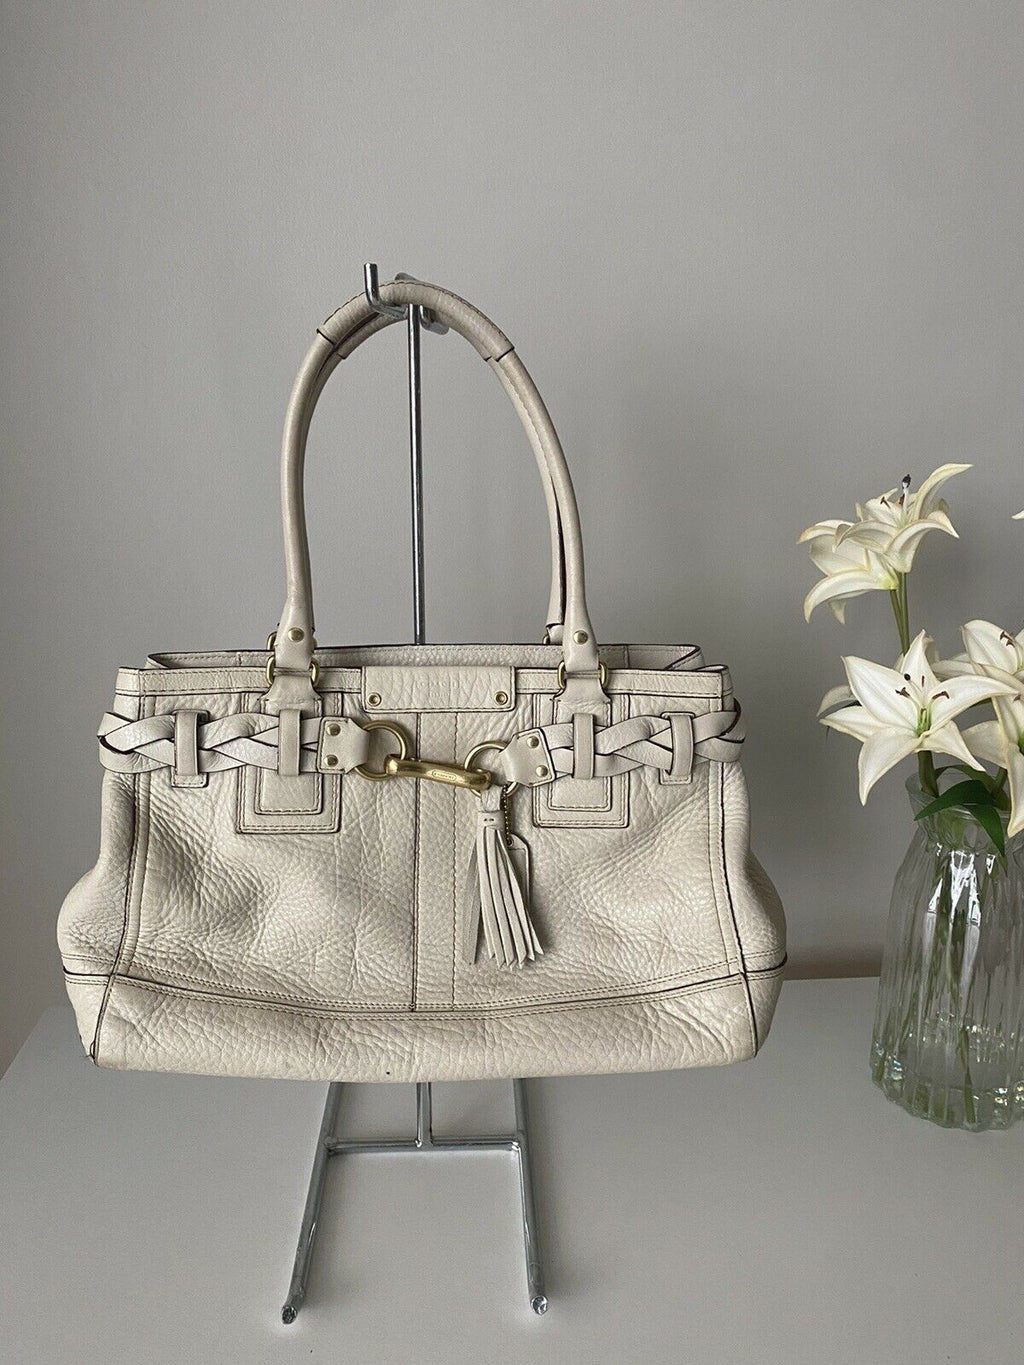 Coach Women's Medium Size Off-White Tote Handbag Leather Woven Trim Purse Bag